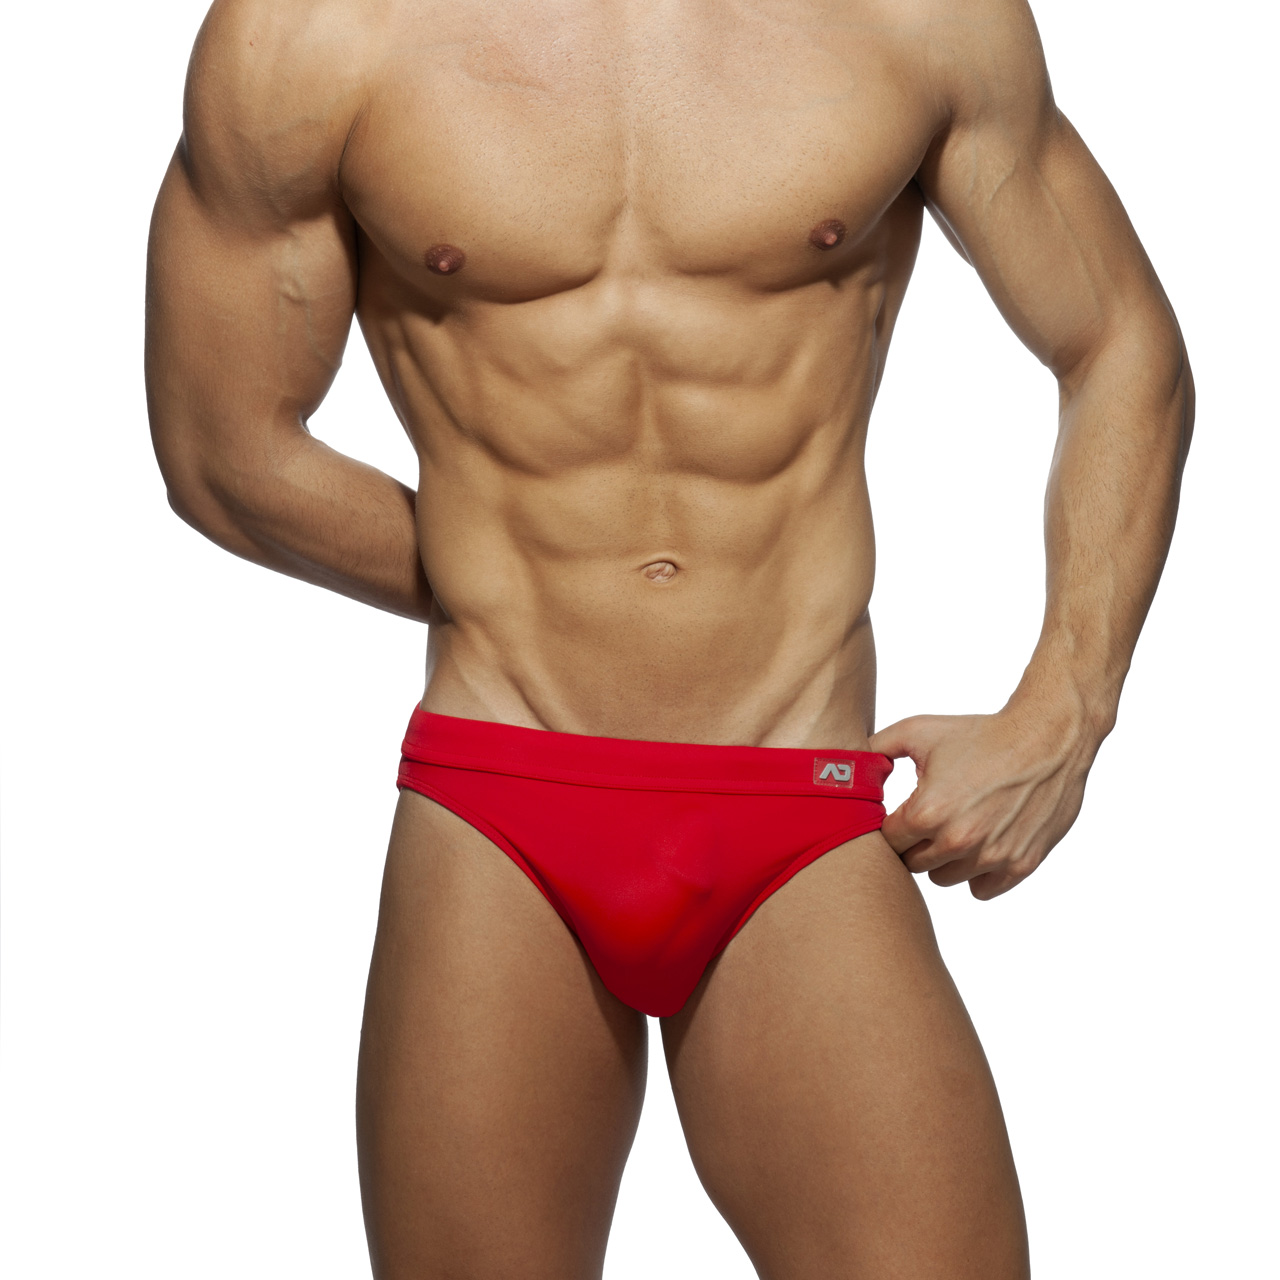 DICK UP SWIM BRIEF RED 06